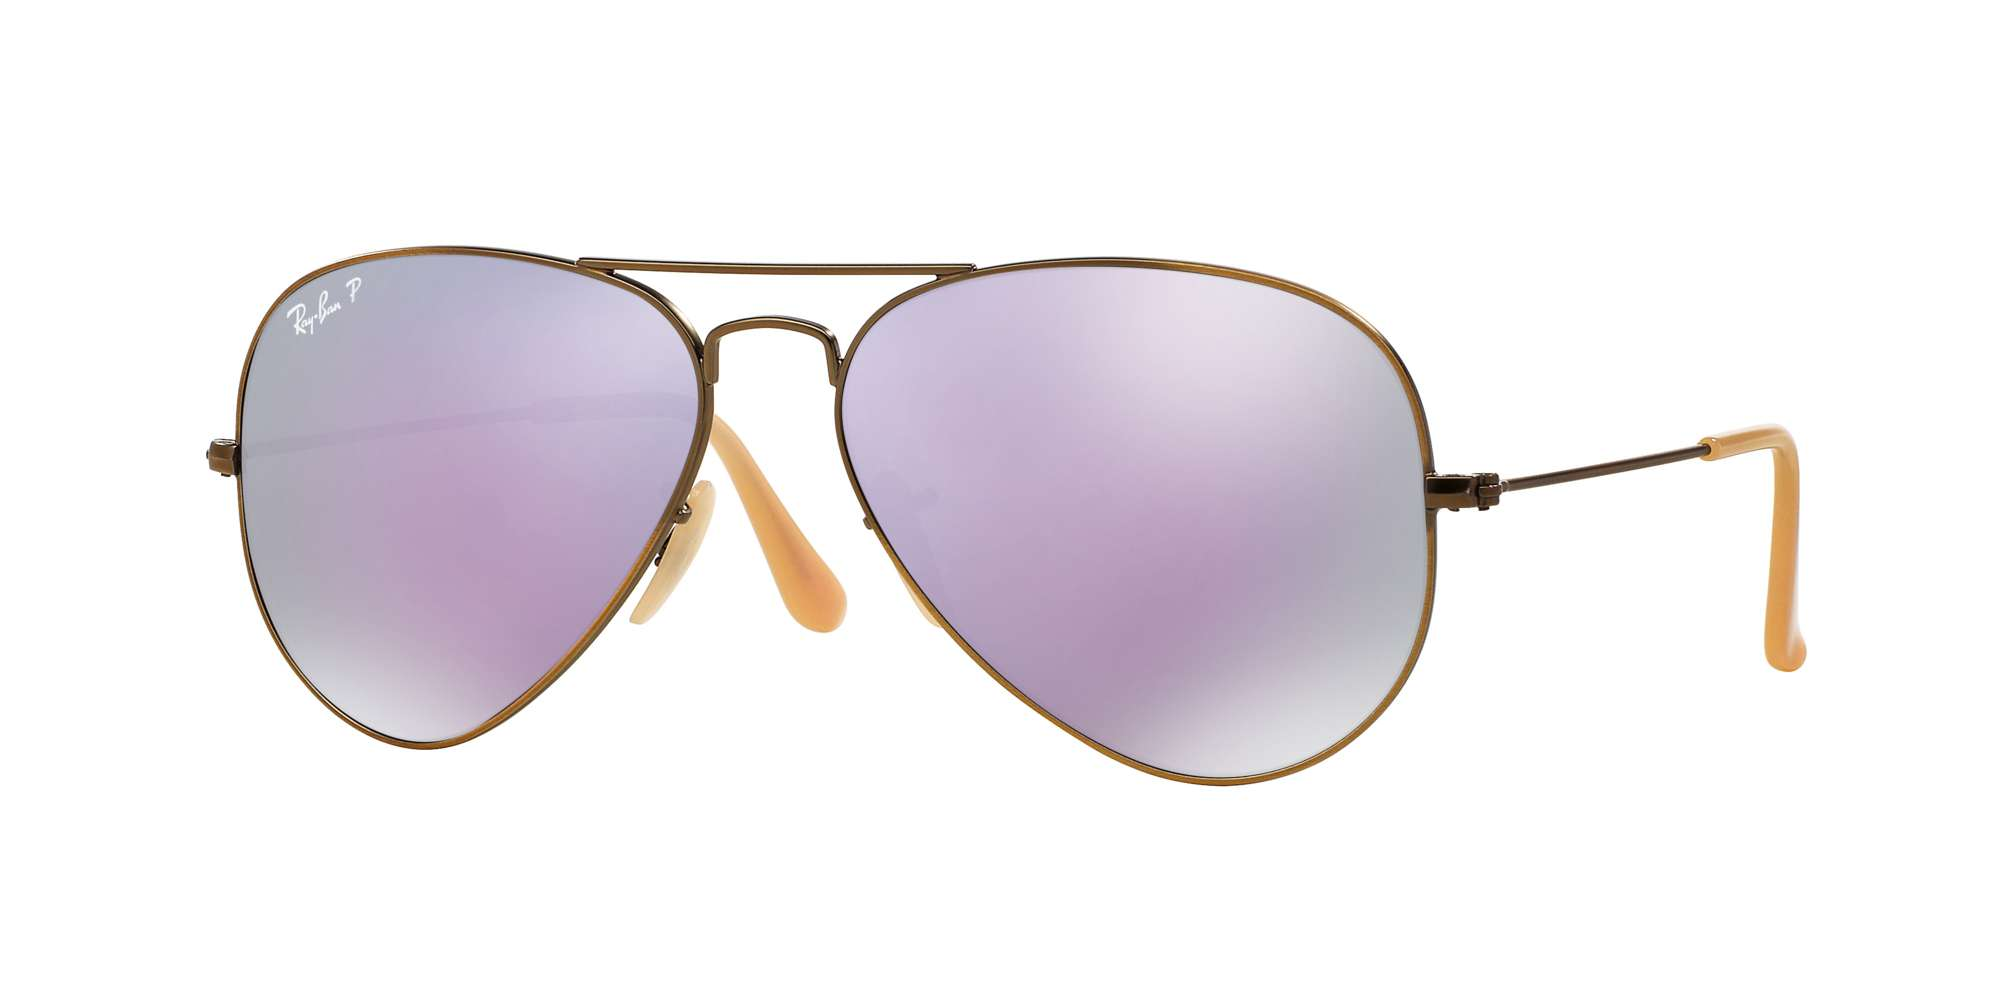 BRUSHED BRONZE DEMISHINY / GREY MIRROR LILAC POLAR lenses